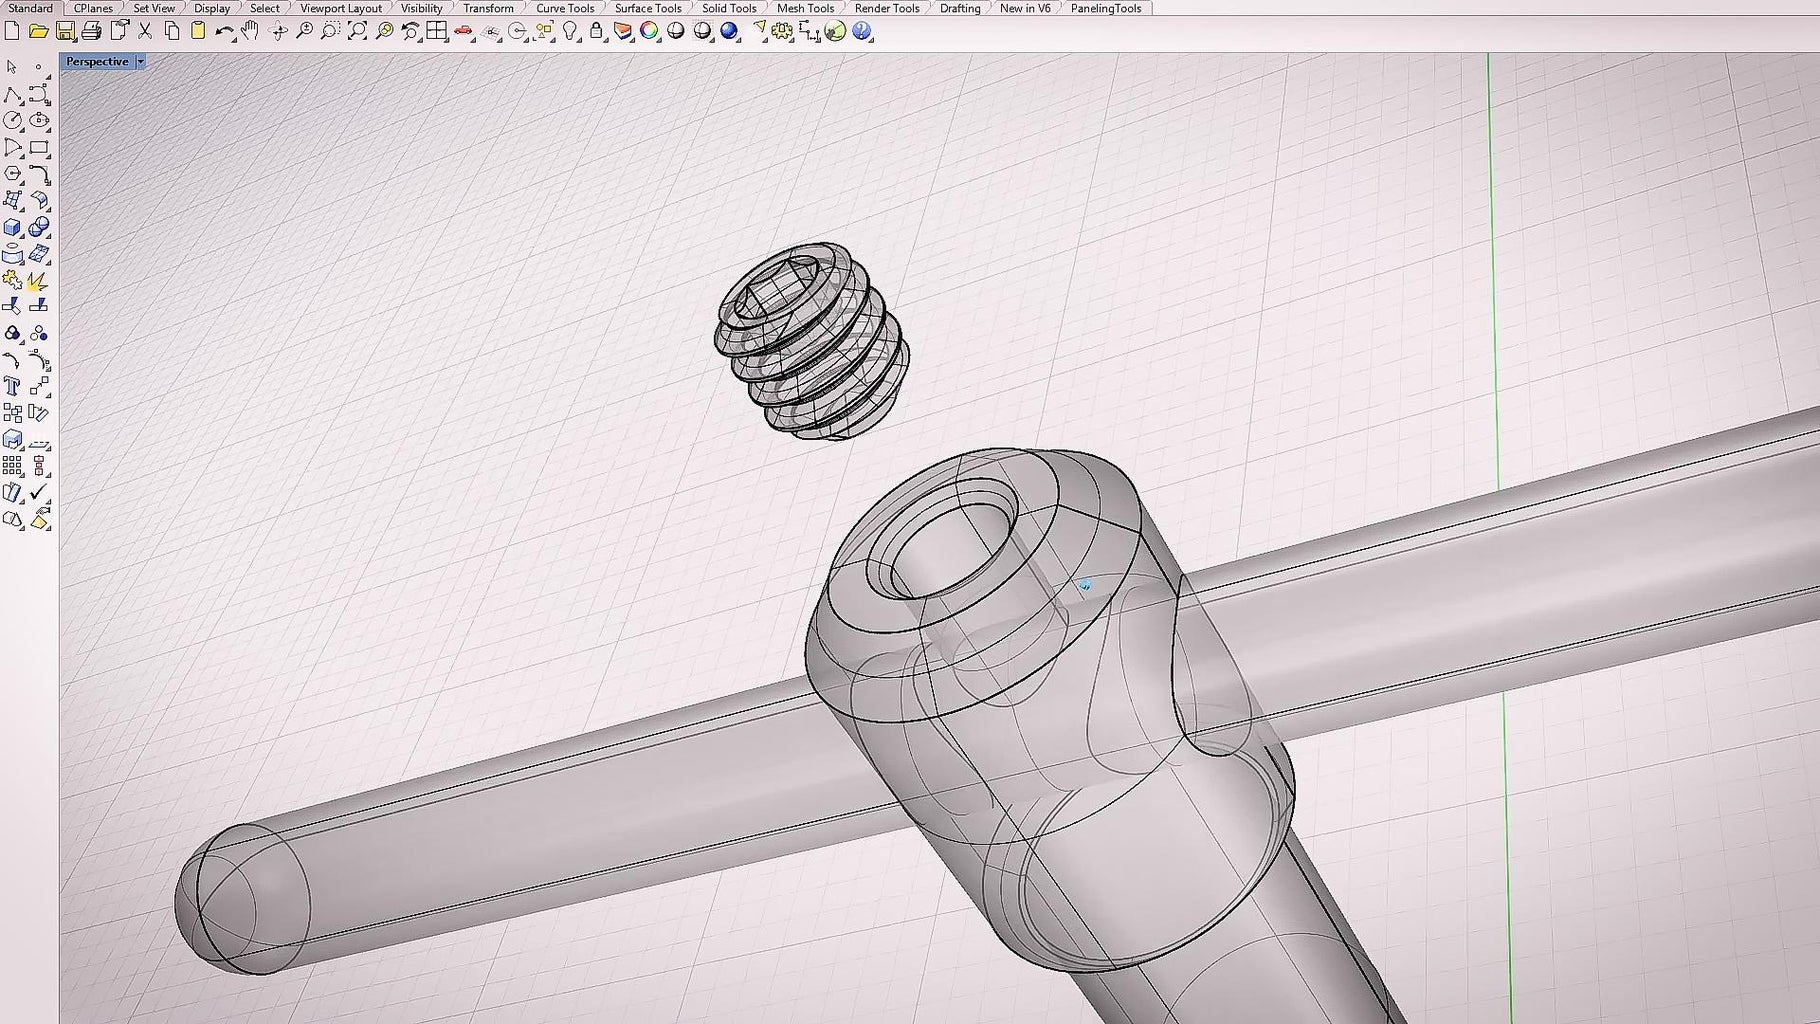 Building the CAD Model